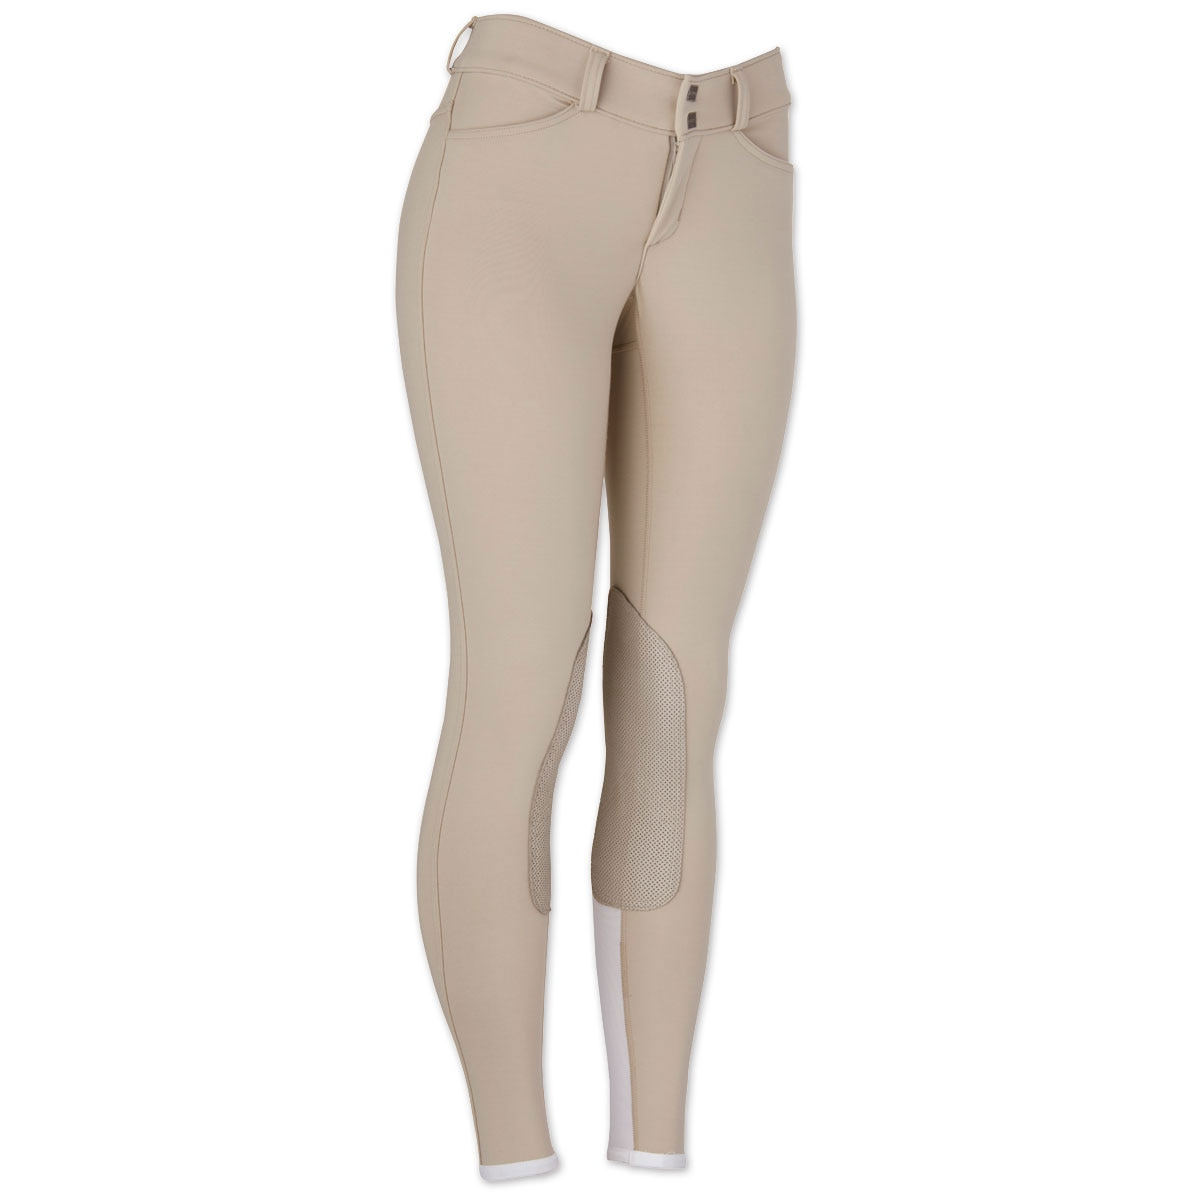 FITS PerforMax Kimberly Knee Patch Breech